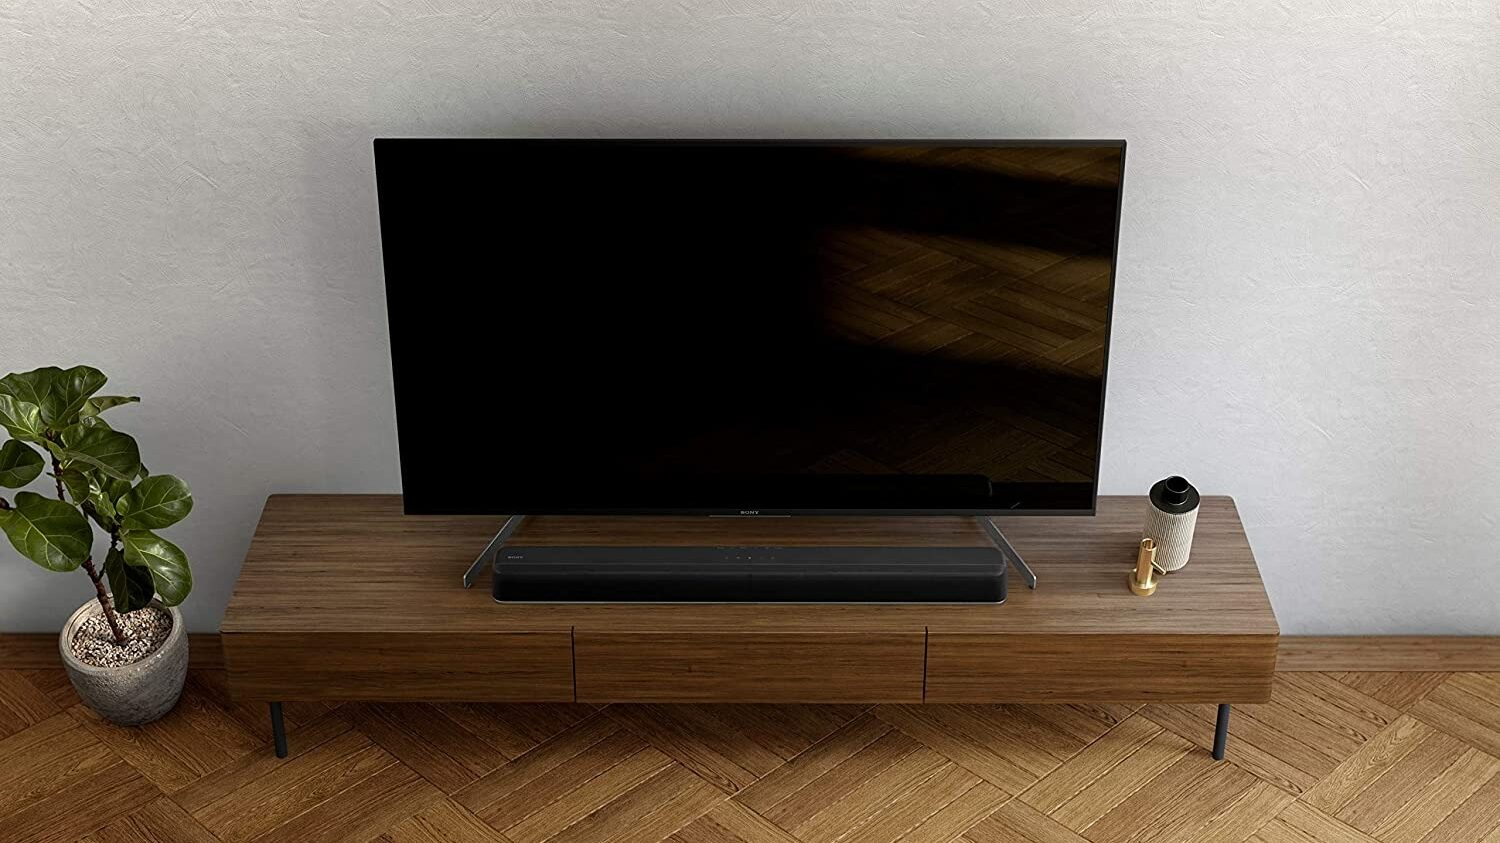 Why you need a DTS:X soundbar and the best ones to buy for your home theater setup